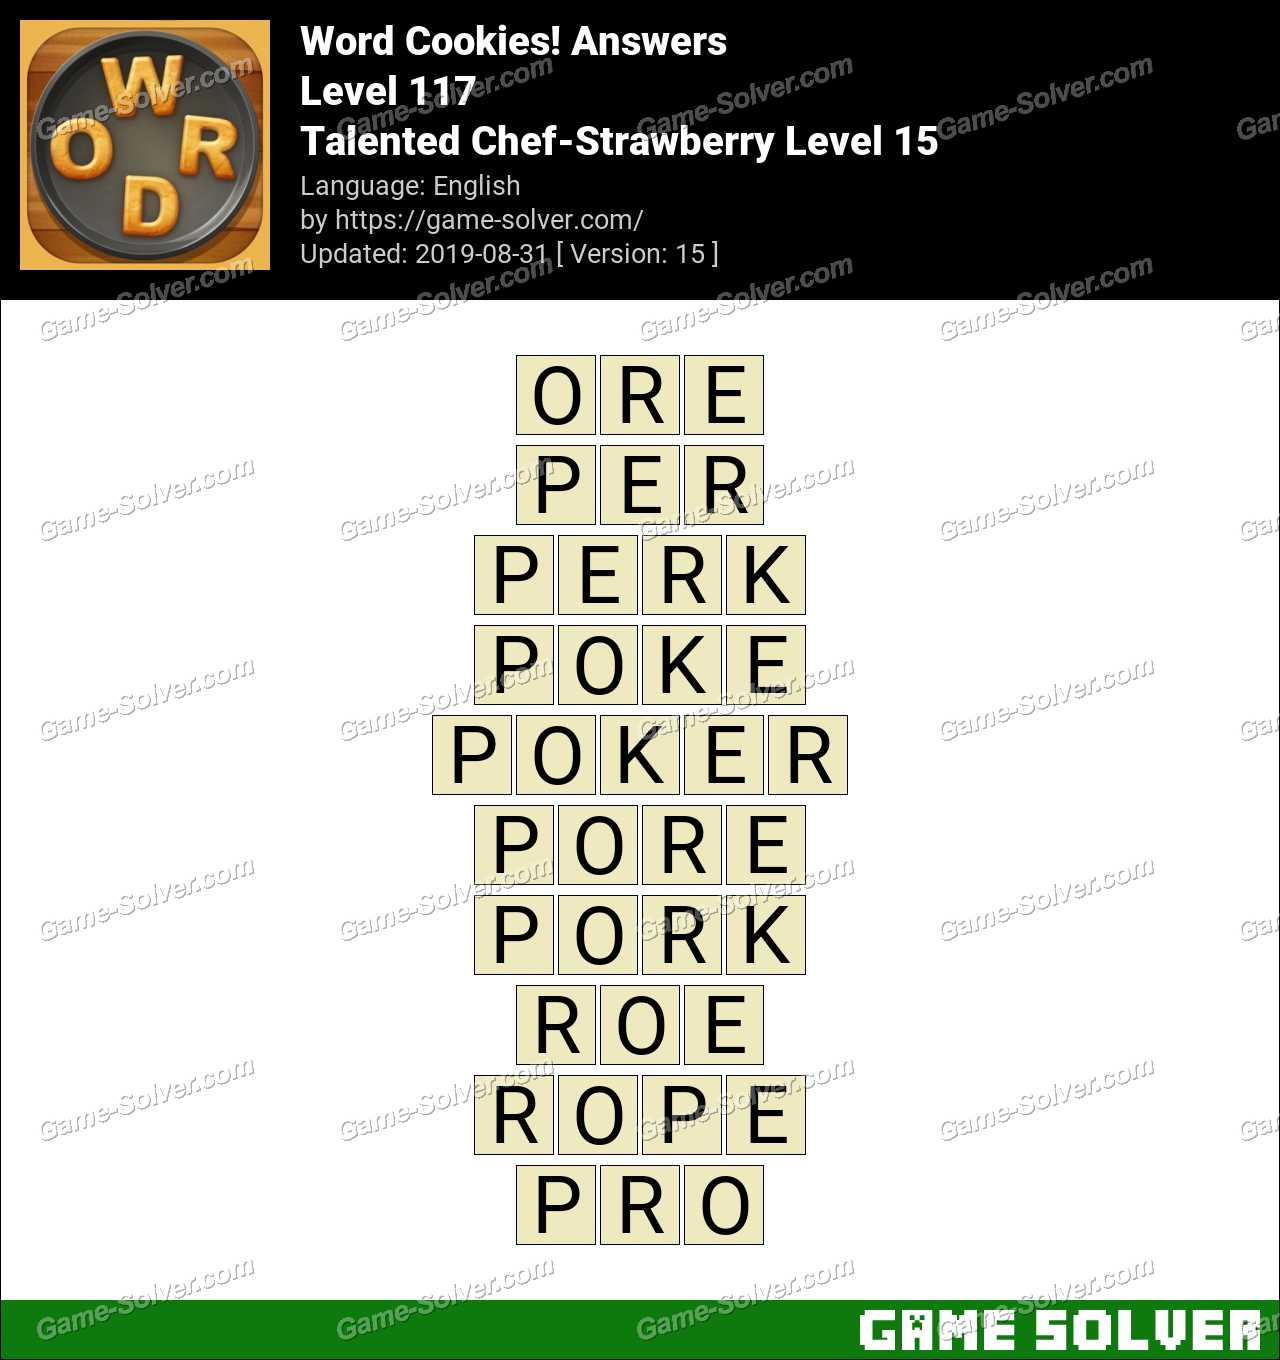 Word Cookies Talented Chef-Strawberry Level 15 Answers